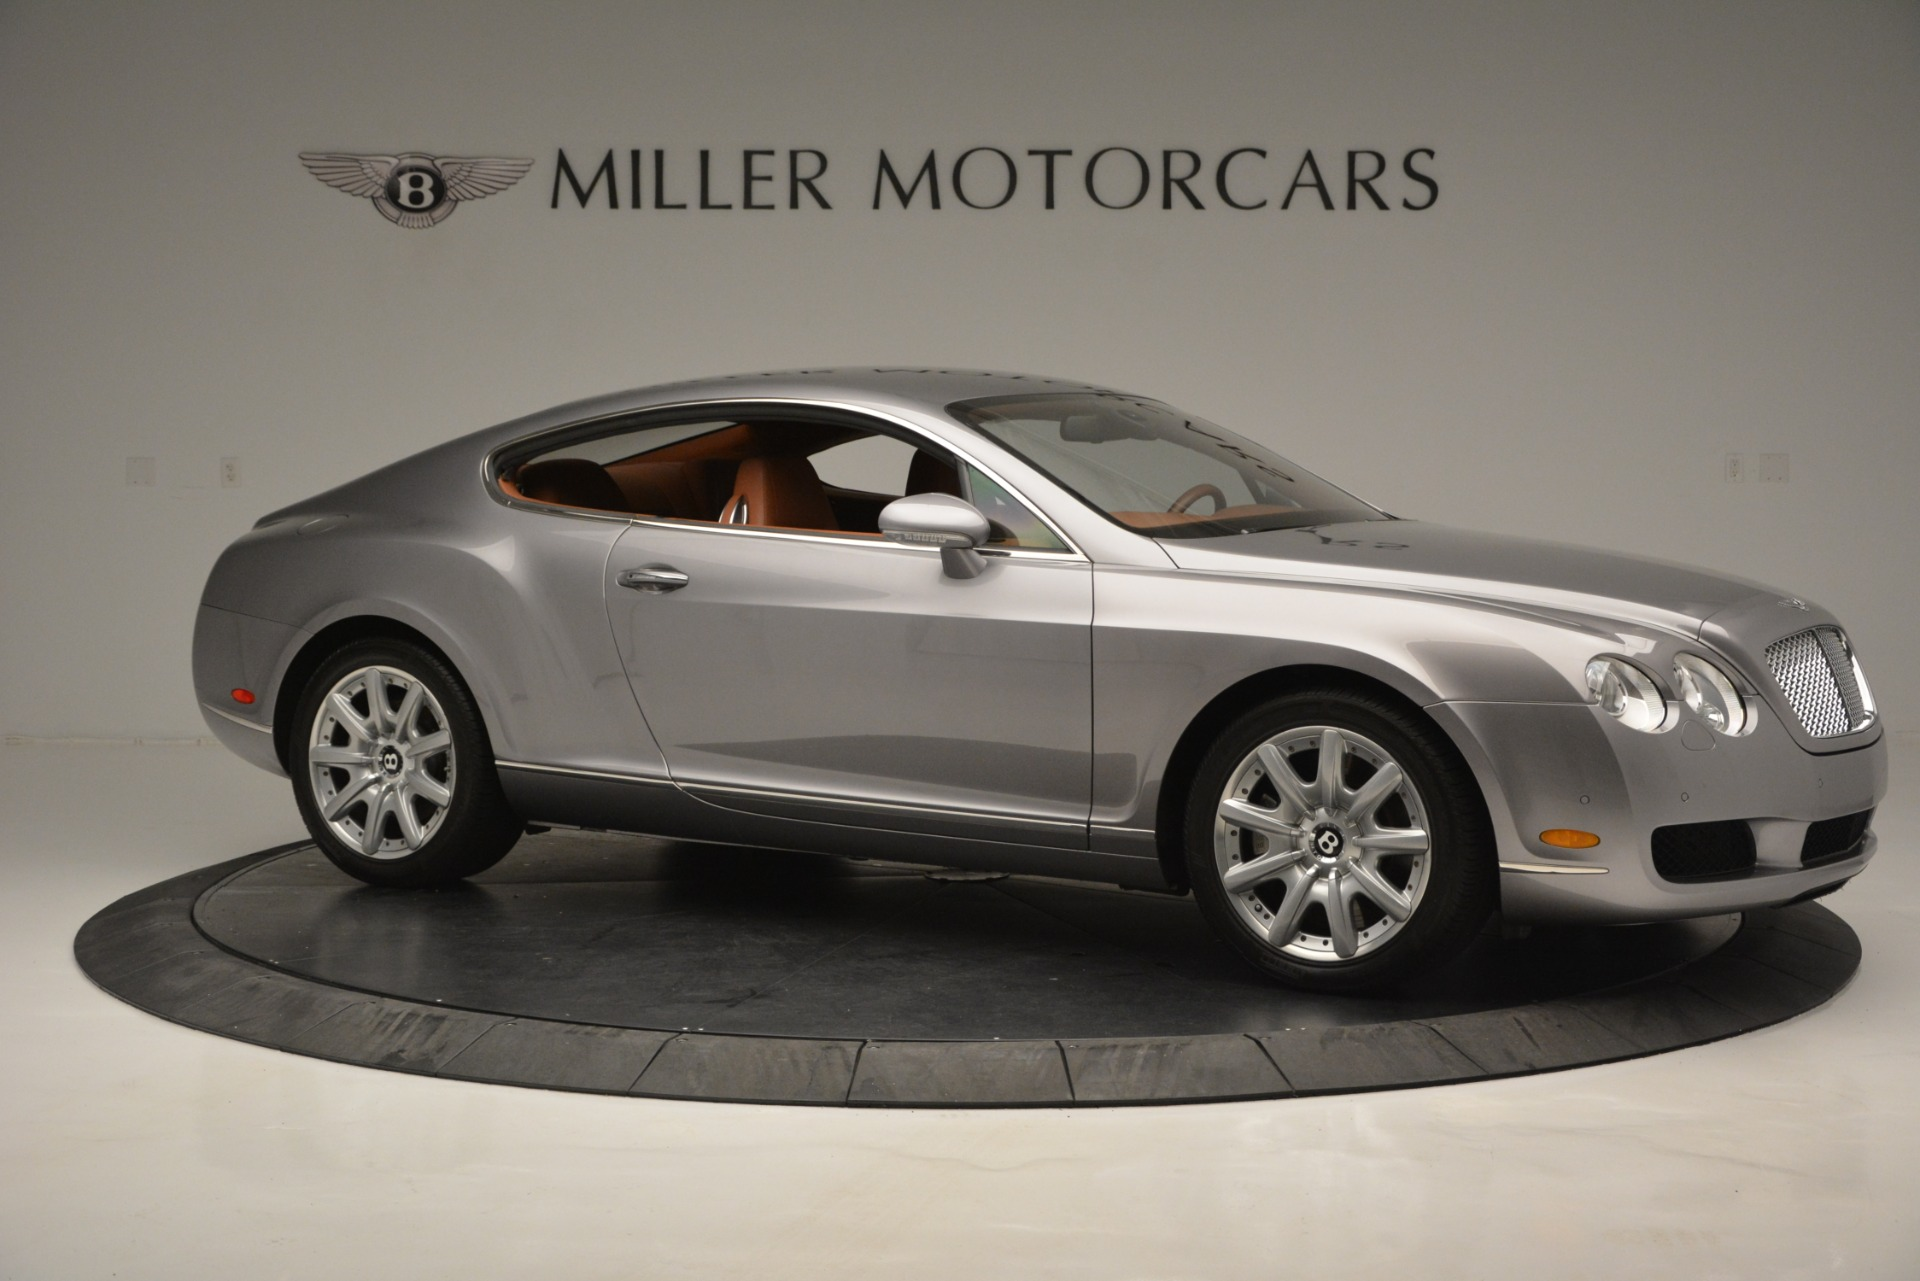 Used 2005 Bentley Continental GT GT Turbo For Sale In Westport, CT 2726_p10